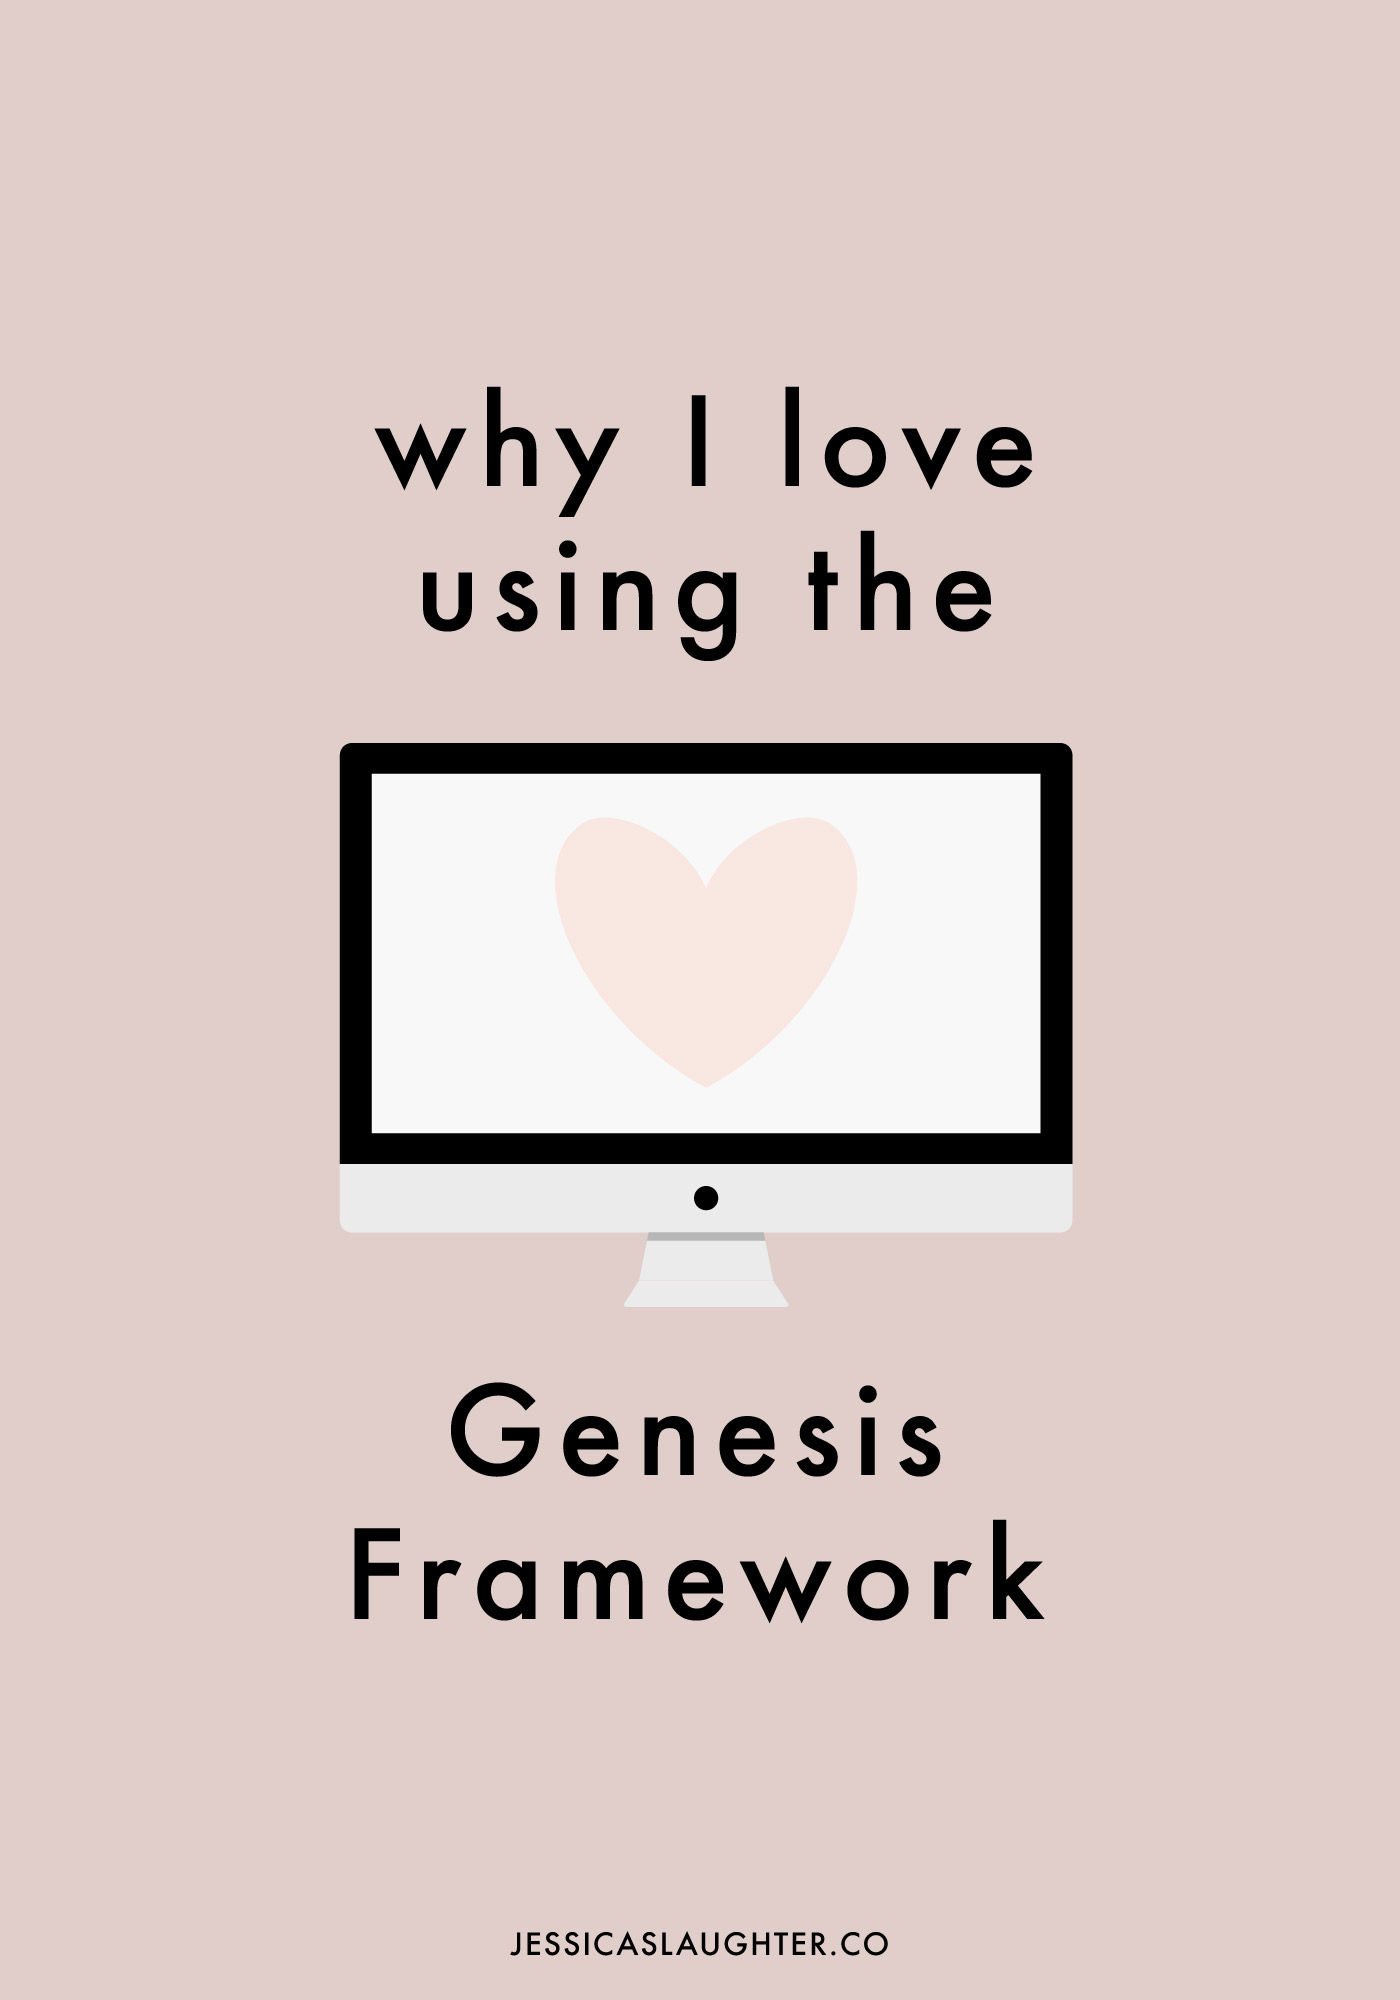 If you can't find the right WordPress theme, or don't know how to code up your own, the Genesis Framework could be the perfect solution for you. Don't know what a framework is? I'll give you the run down!